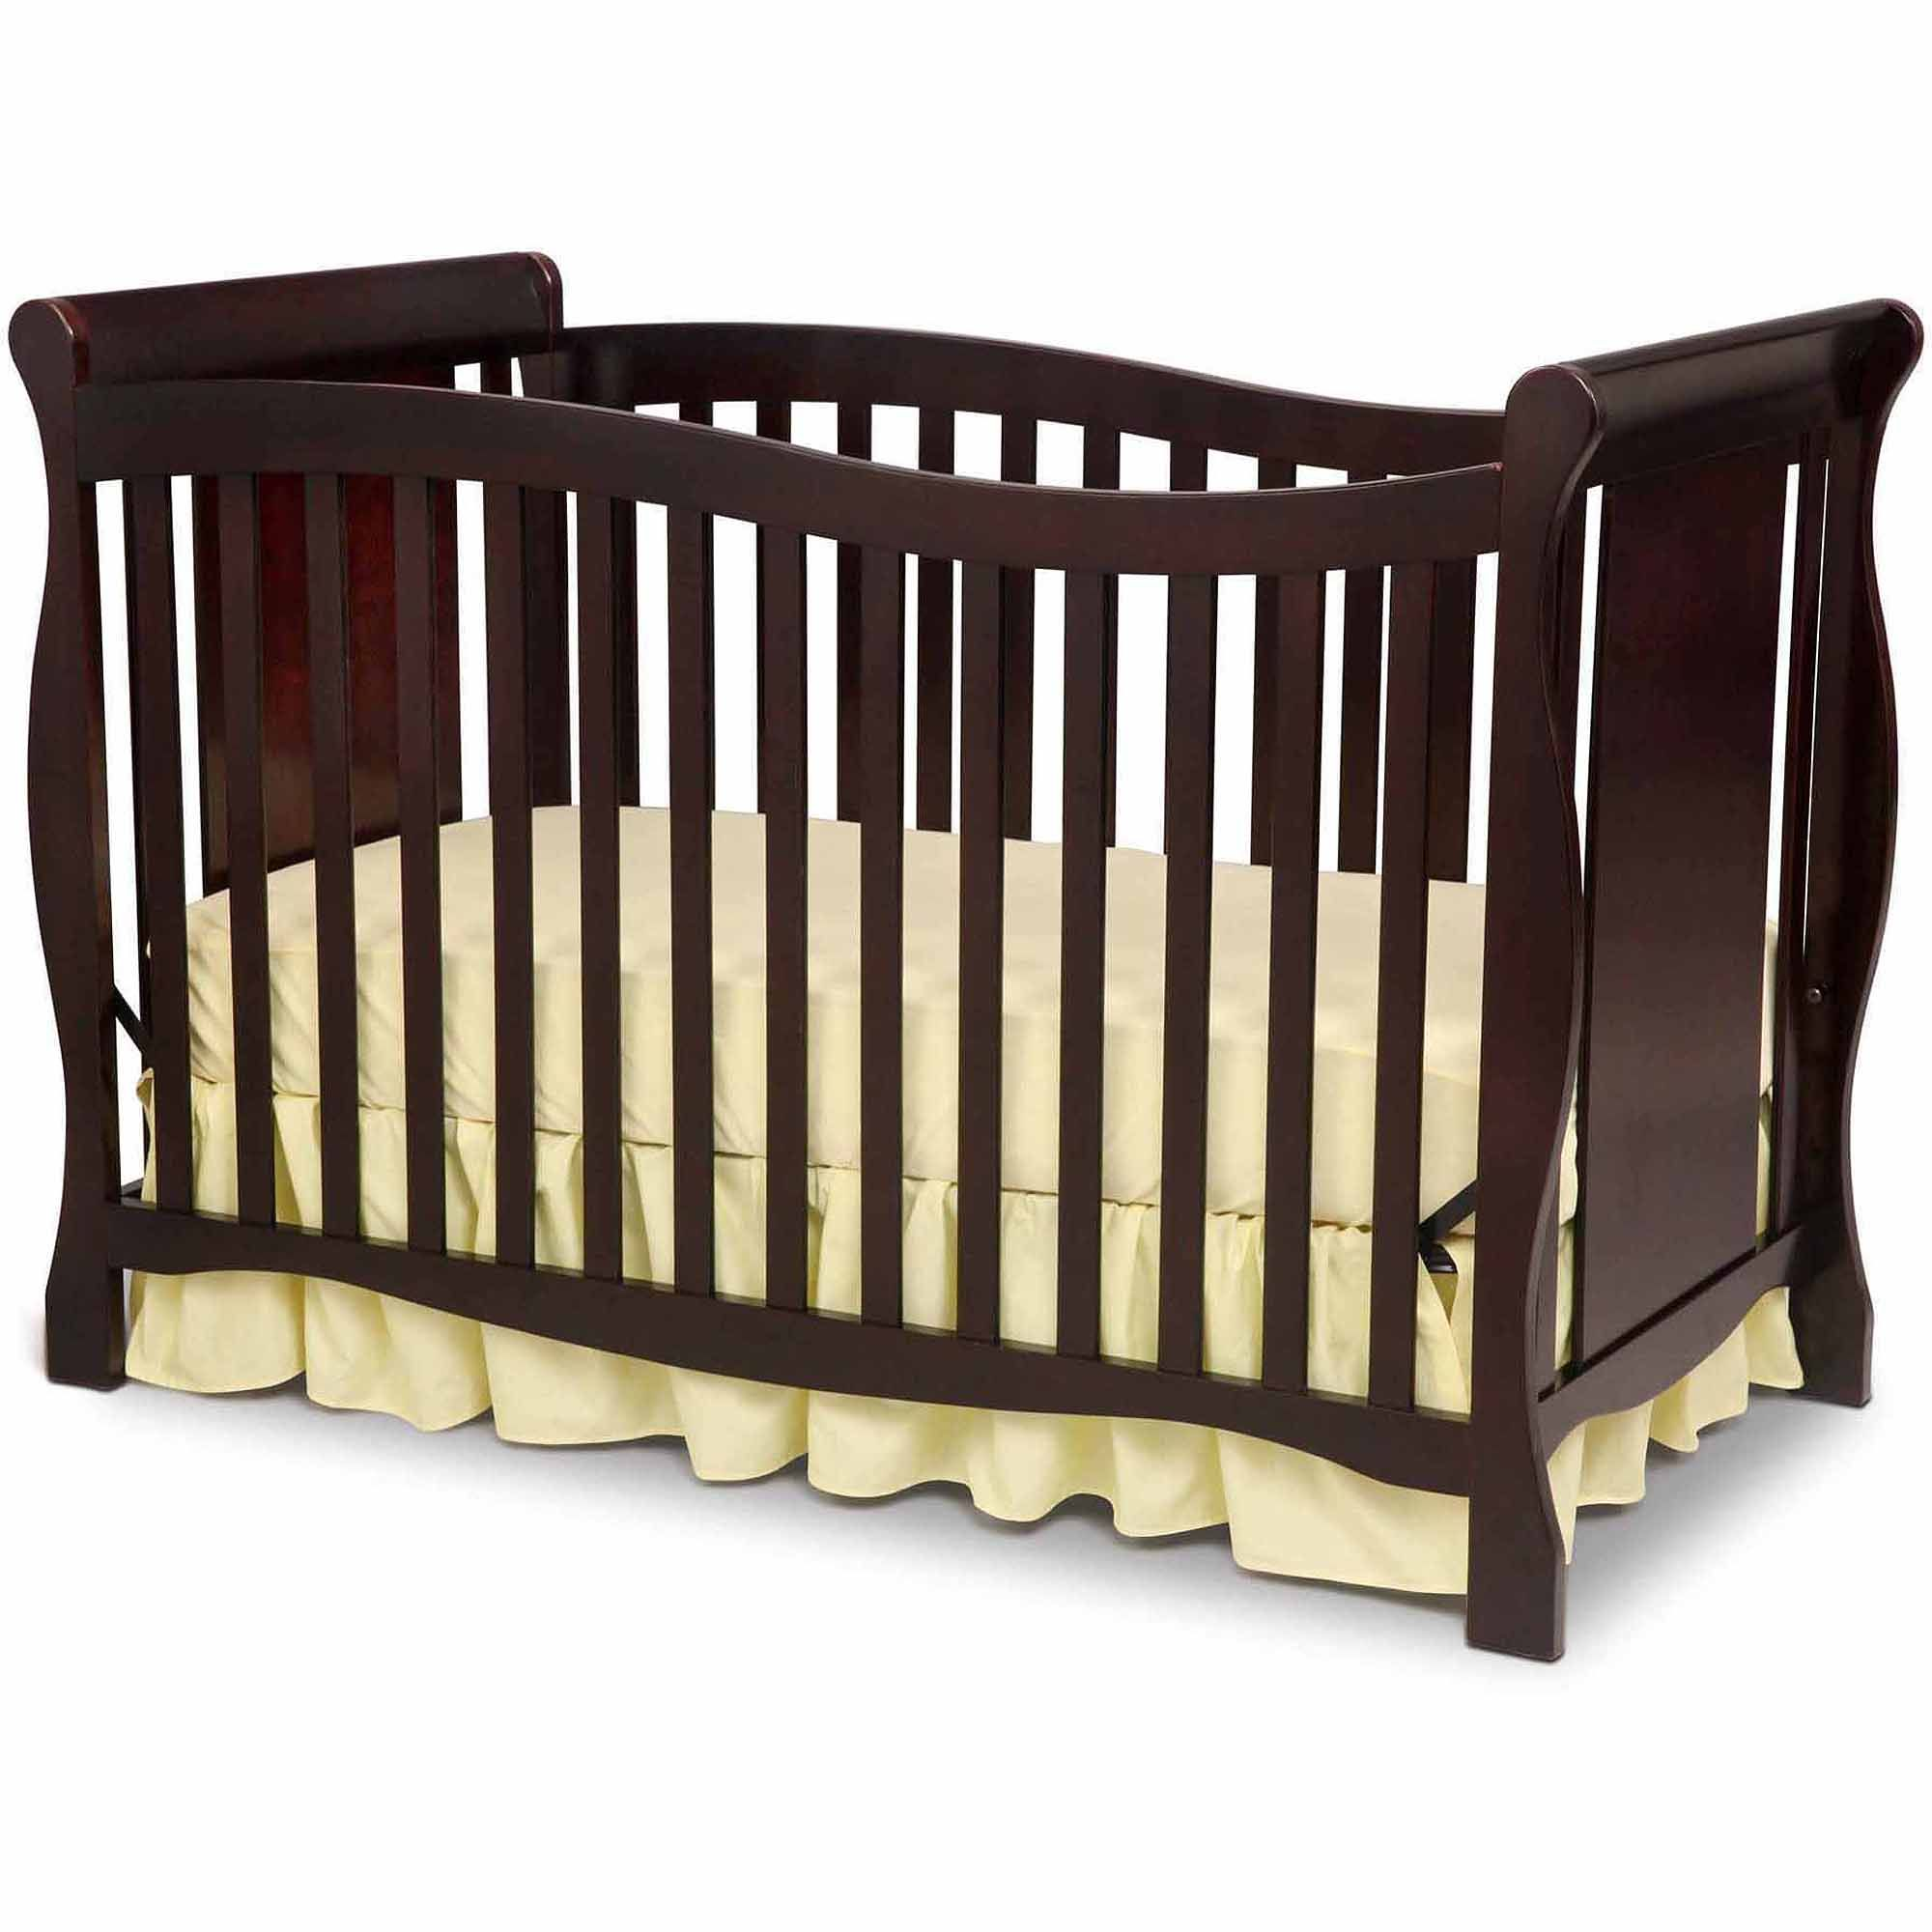 s cribs everly convertible our inc crib dream new baby about